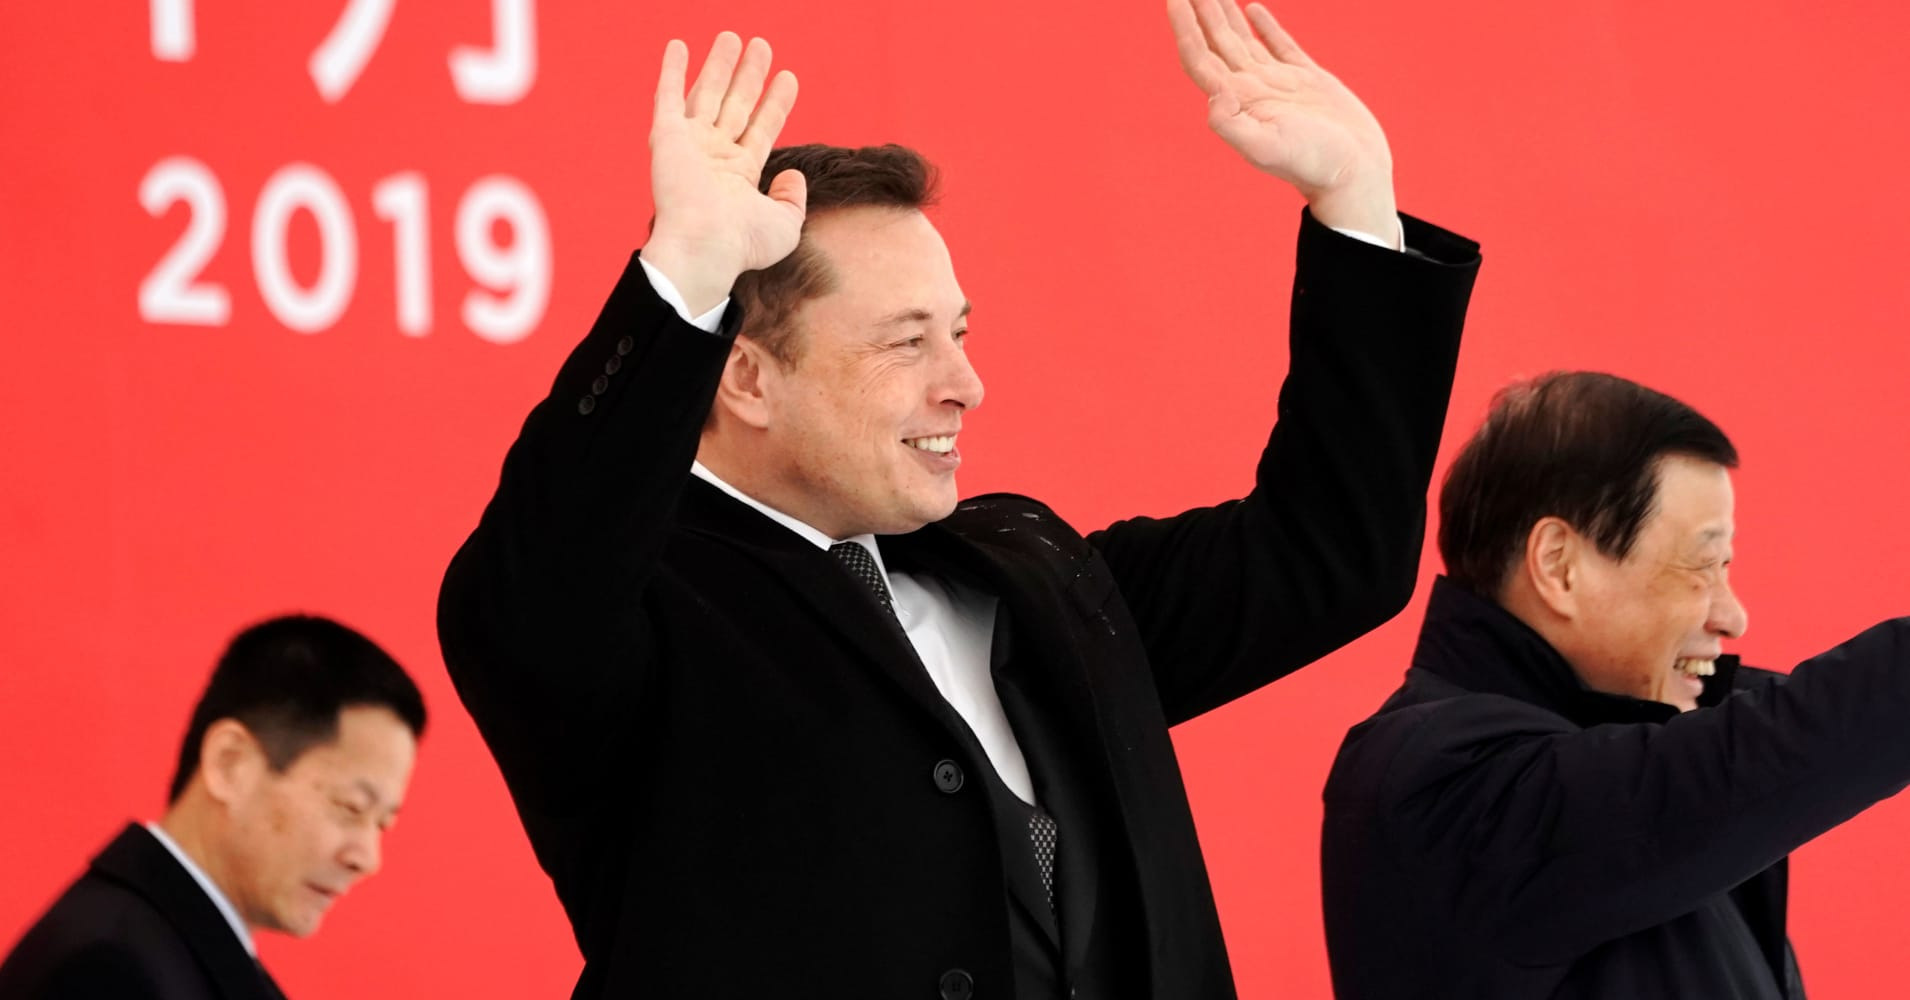 Tesla CEO Elon Musk and Shanghai's Mayor Ying Yong attend the Tesla Shanghai Gigafactory groundbreaking ceremony in Shanghai, China January 7, 2019.